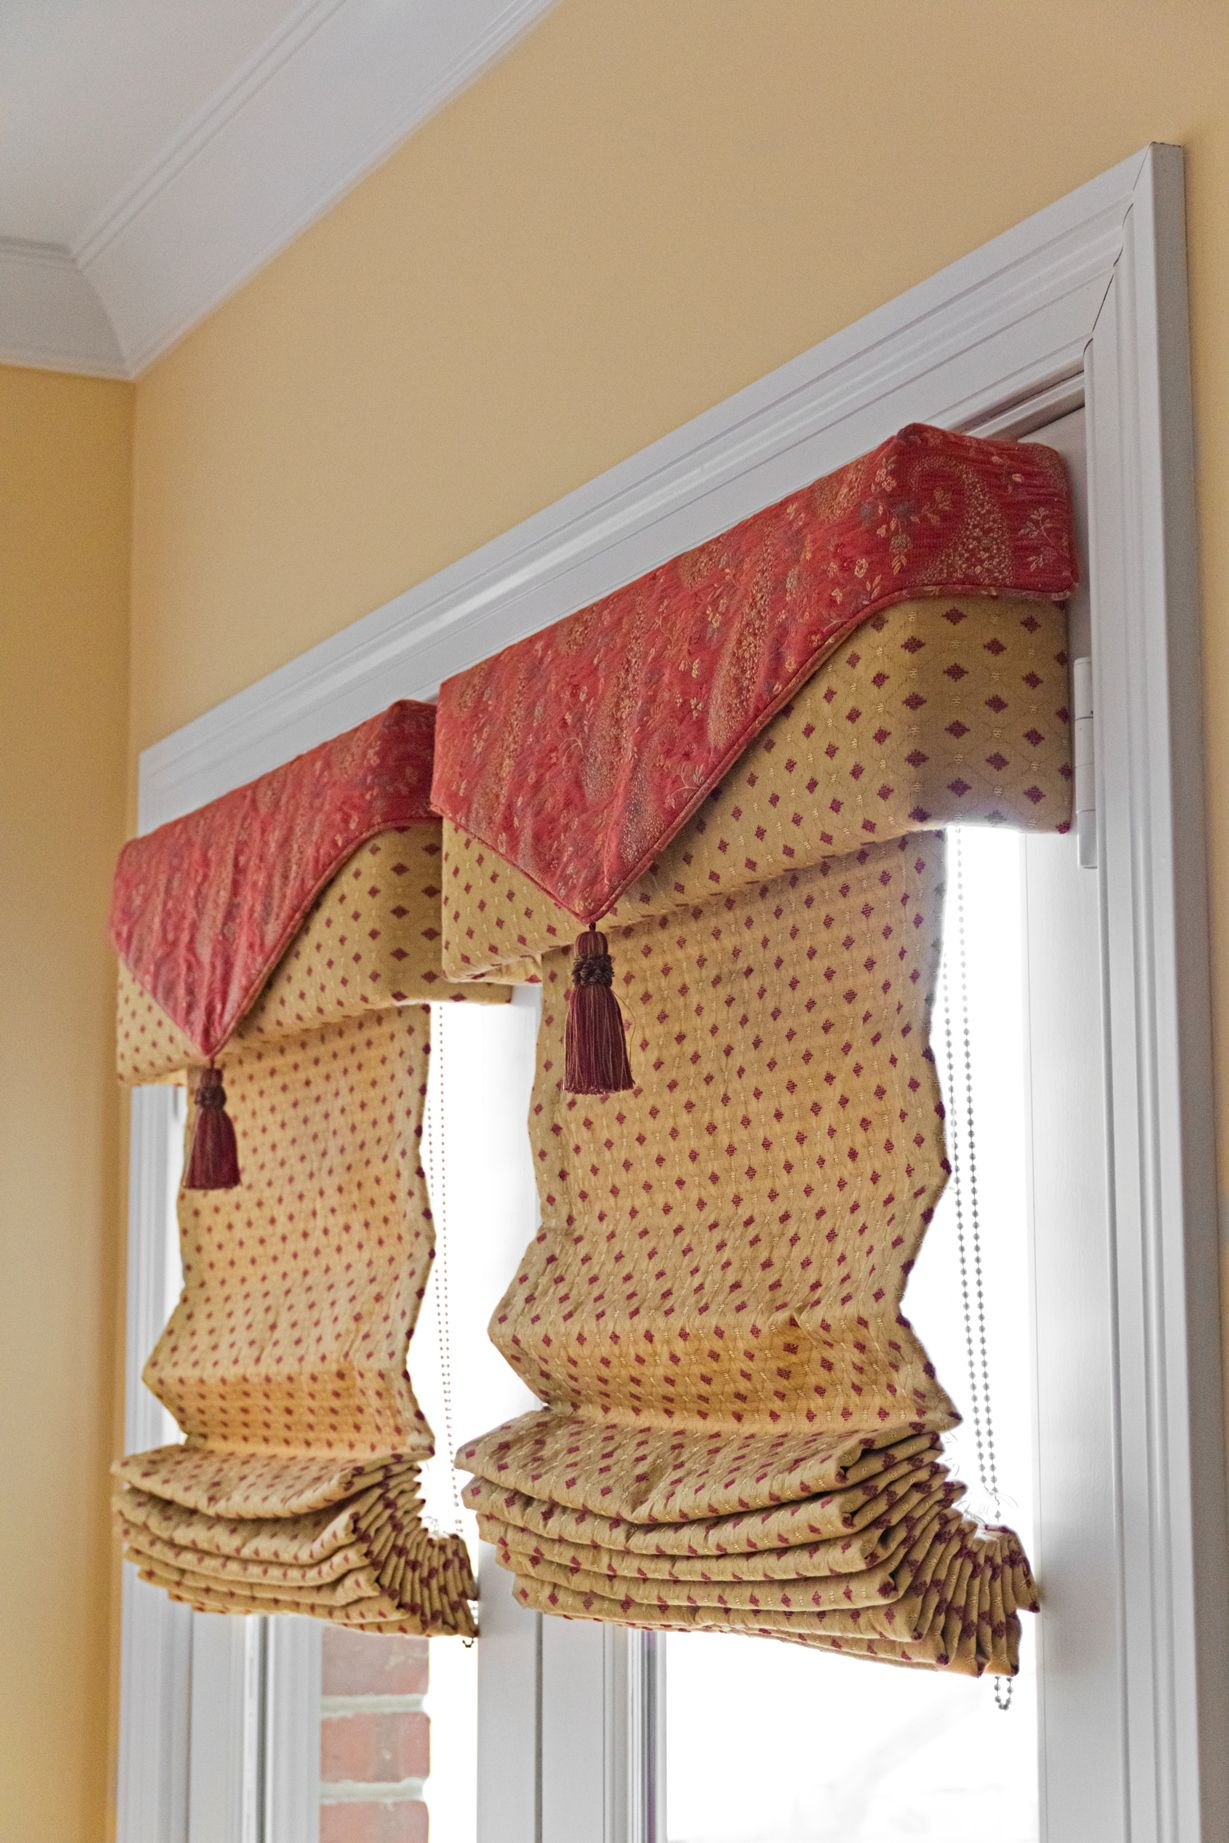 Custom Shades And Cornices Should Be Proportional To